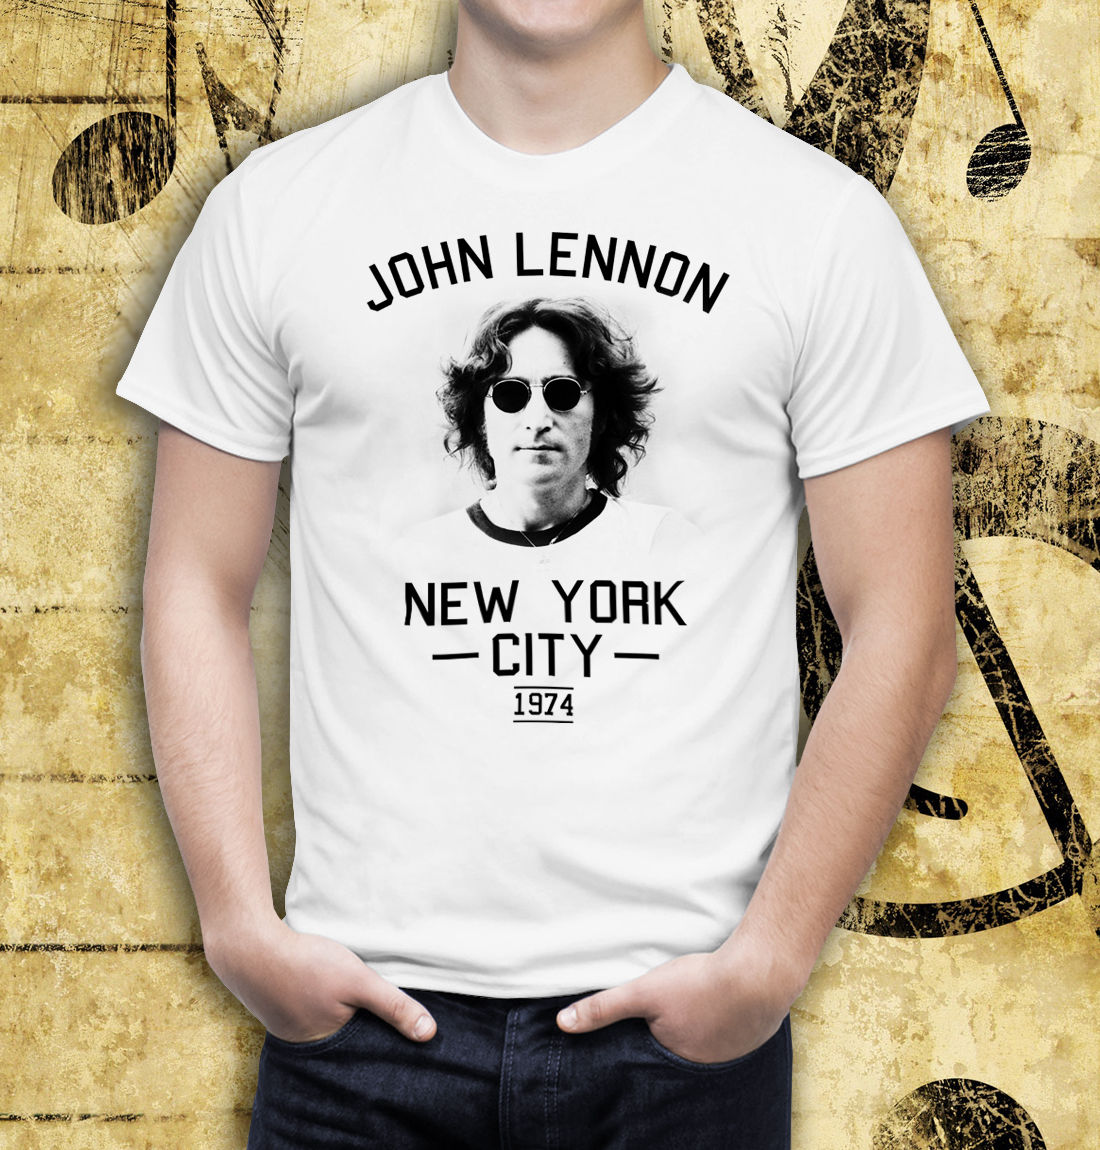 John Lennon New York City 1974 White Men Printed T Shirt Aliexpress